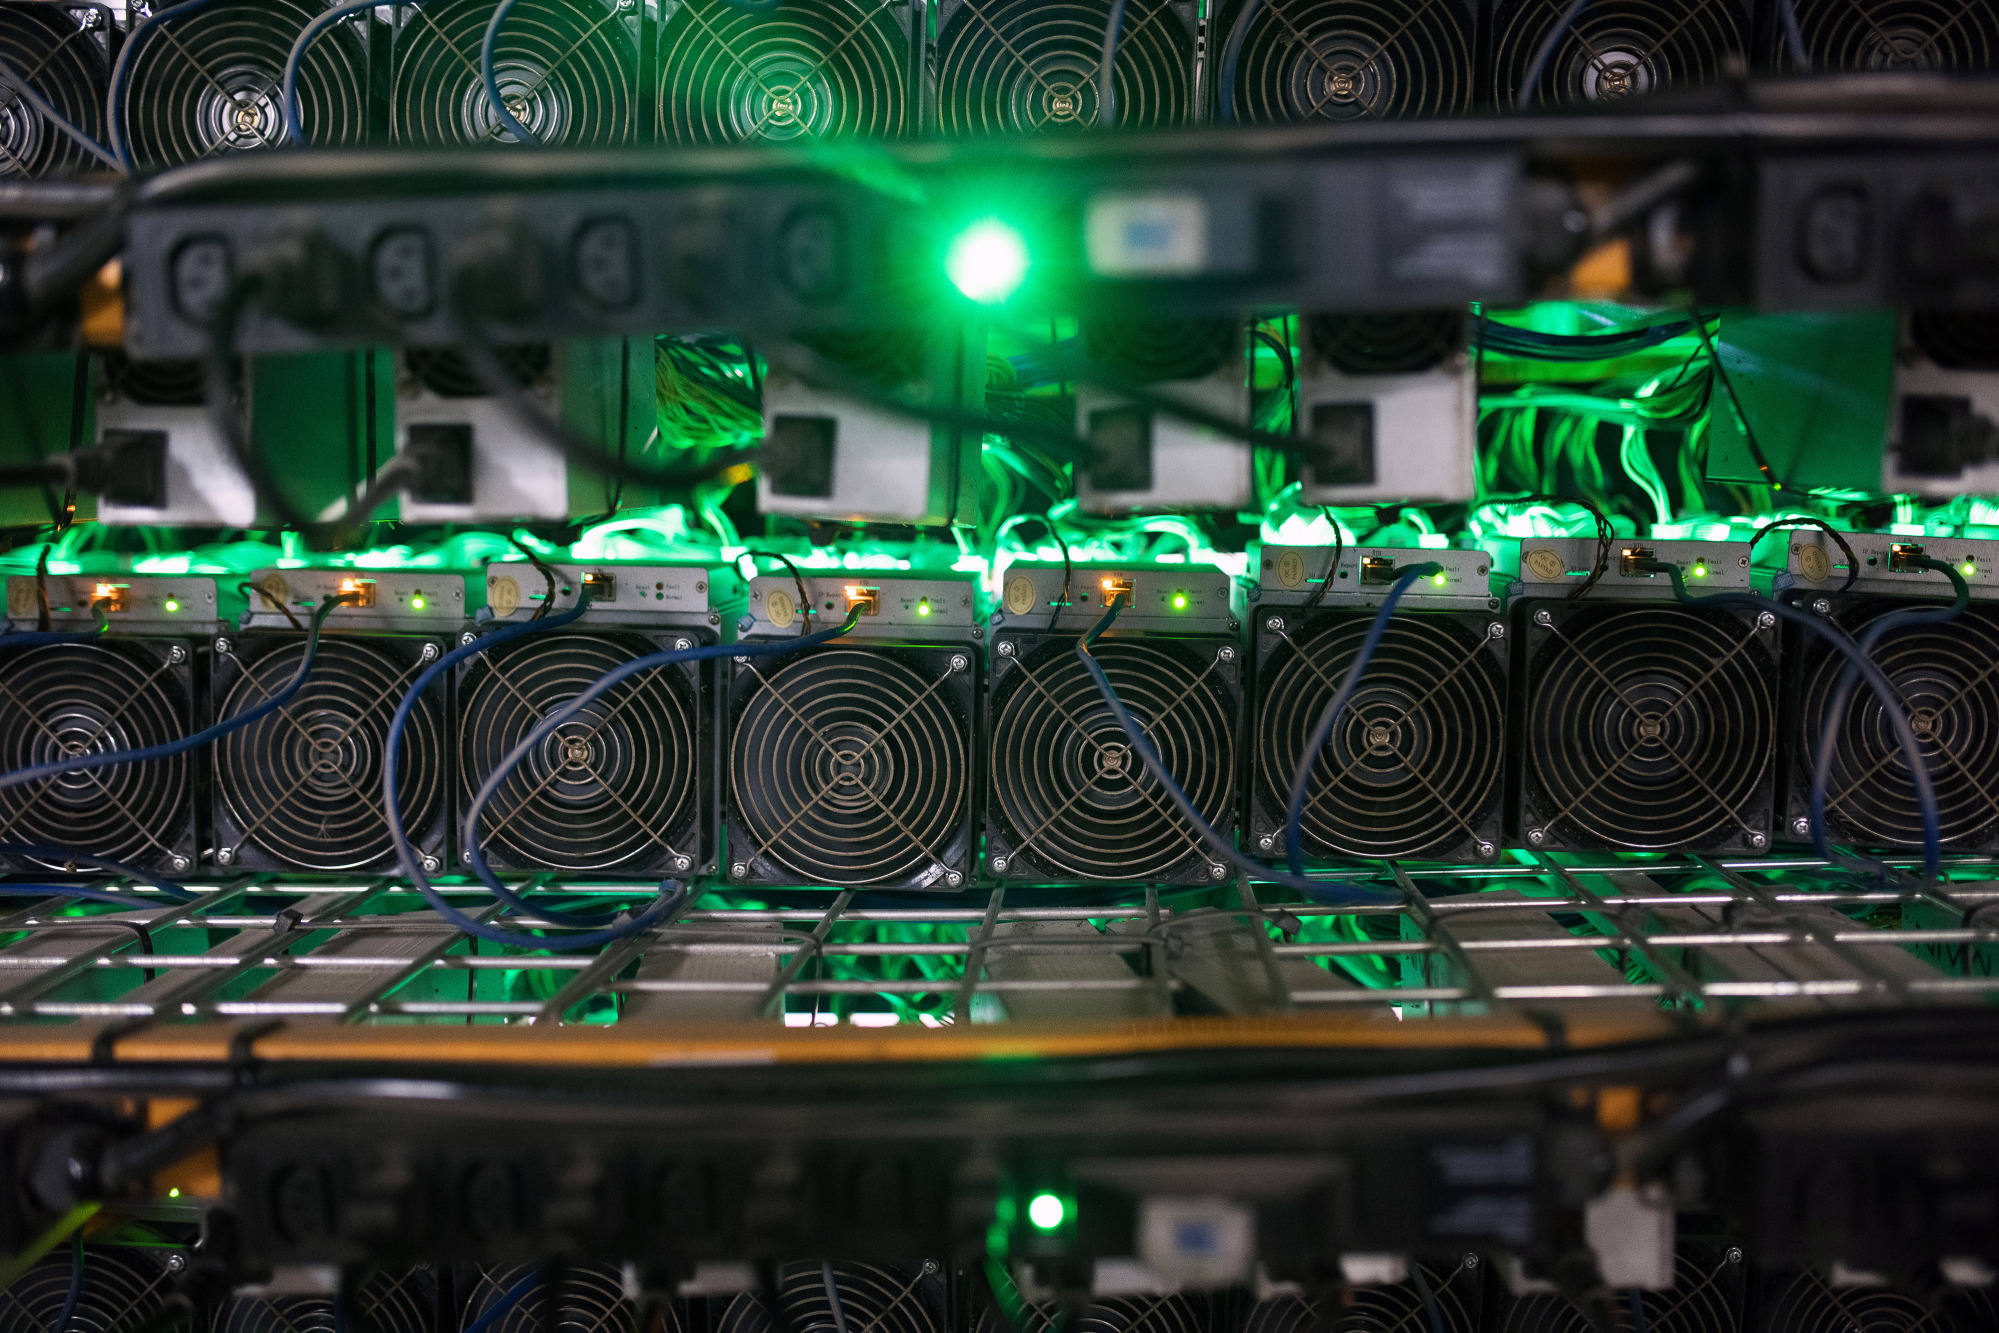 Bitcoin Mining Puts Pressure on Irans Power Grids